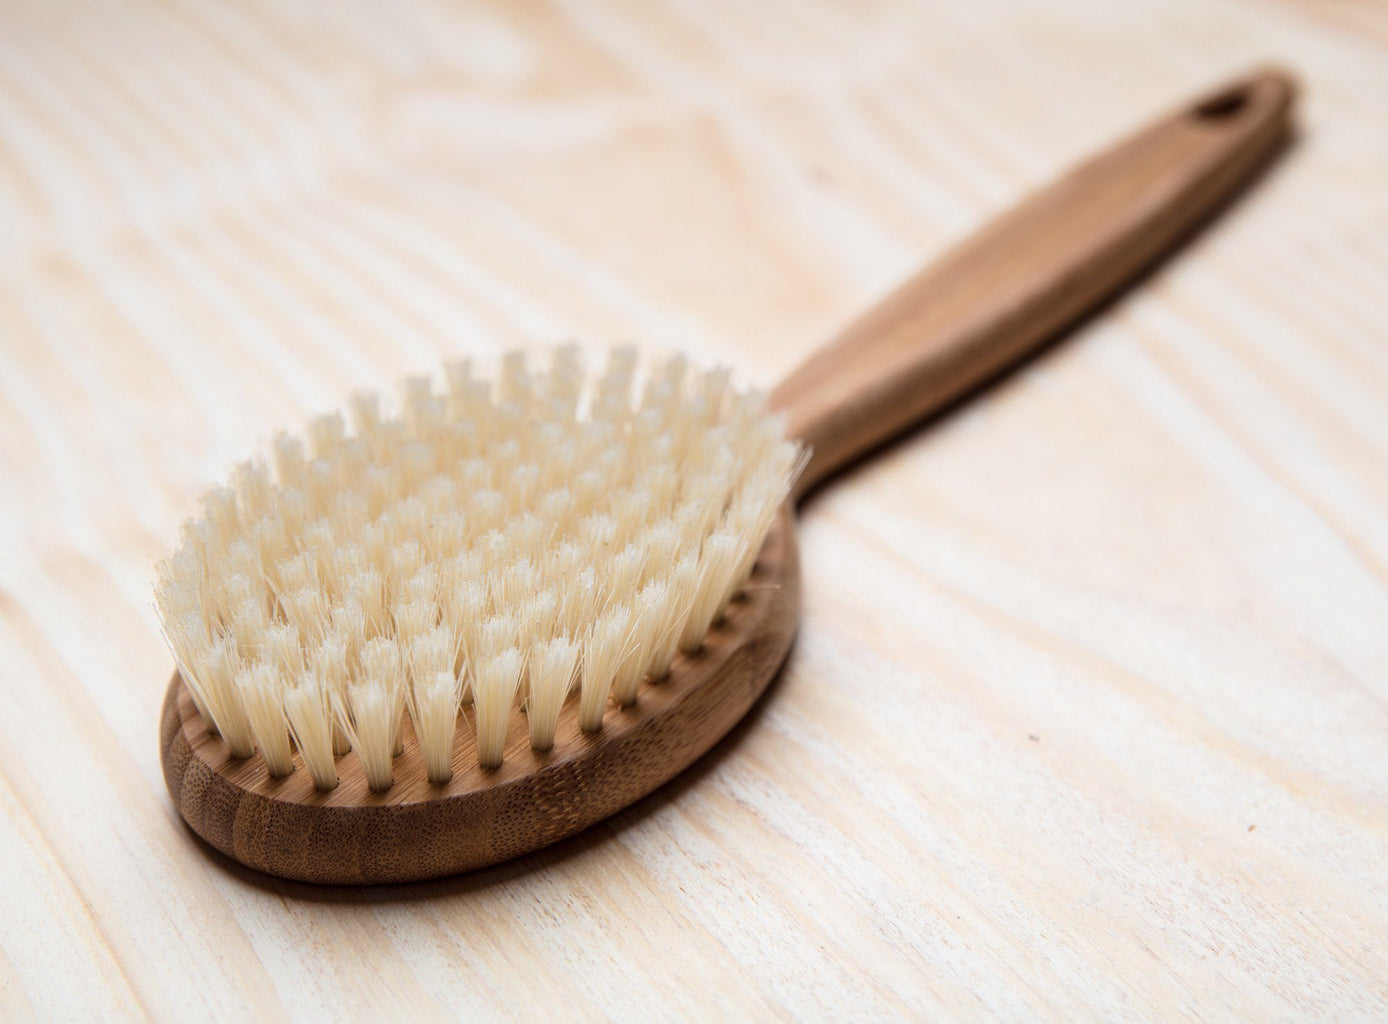 Faller Bamboo Bath Brush with Natural Boar Bristles - Made in Germany